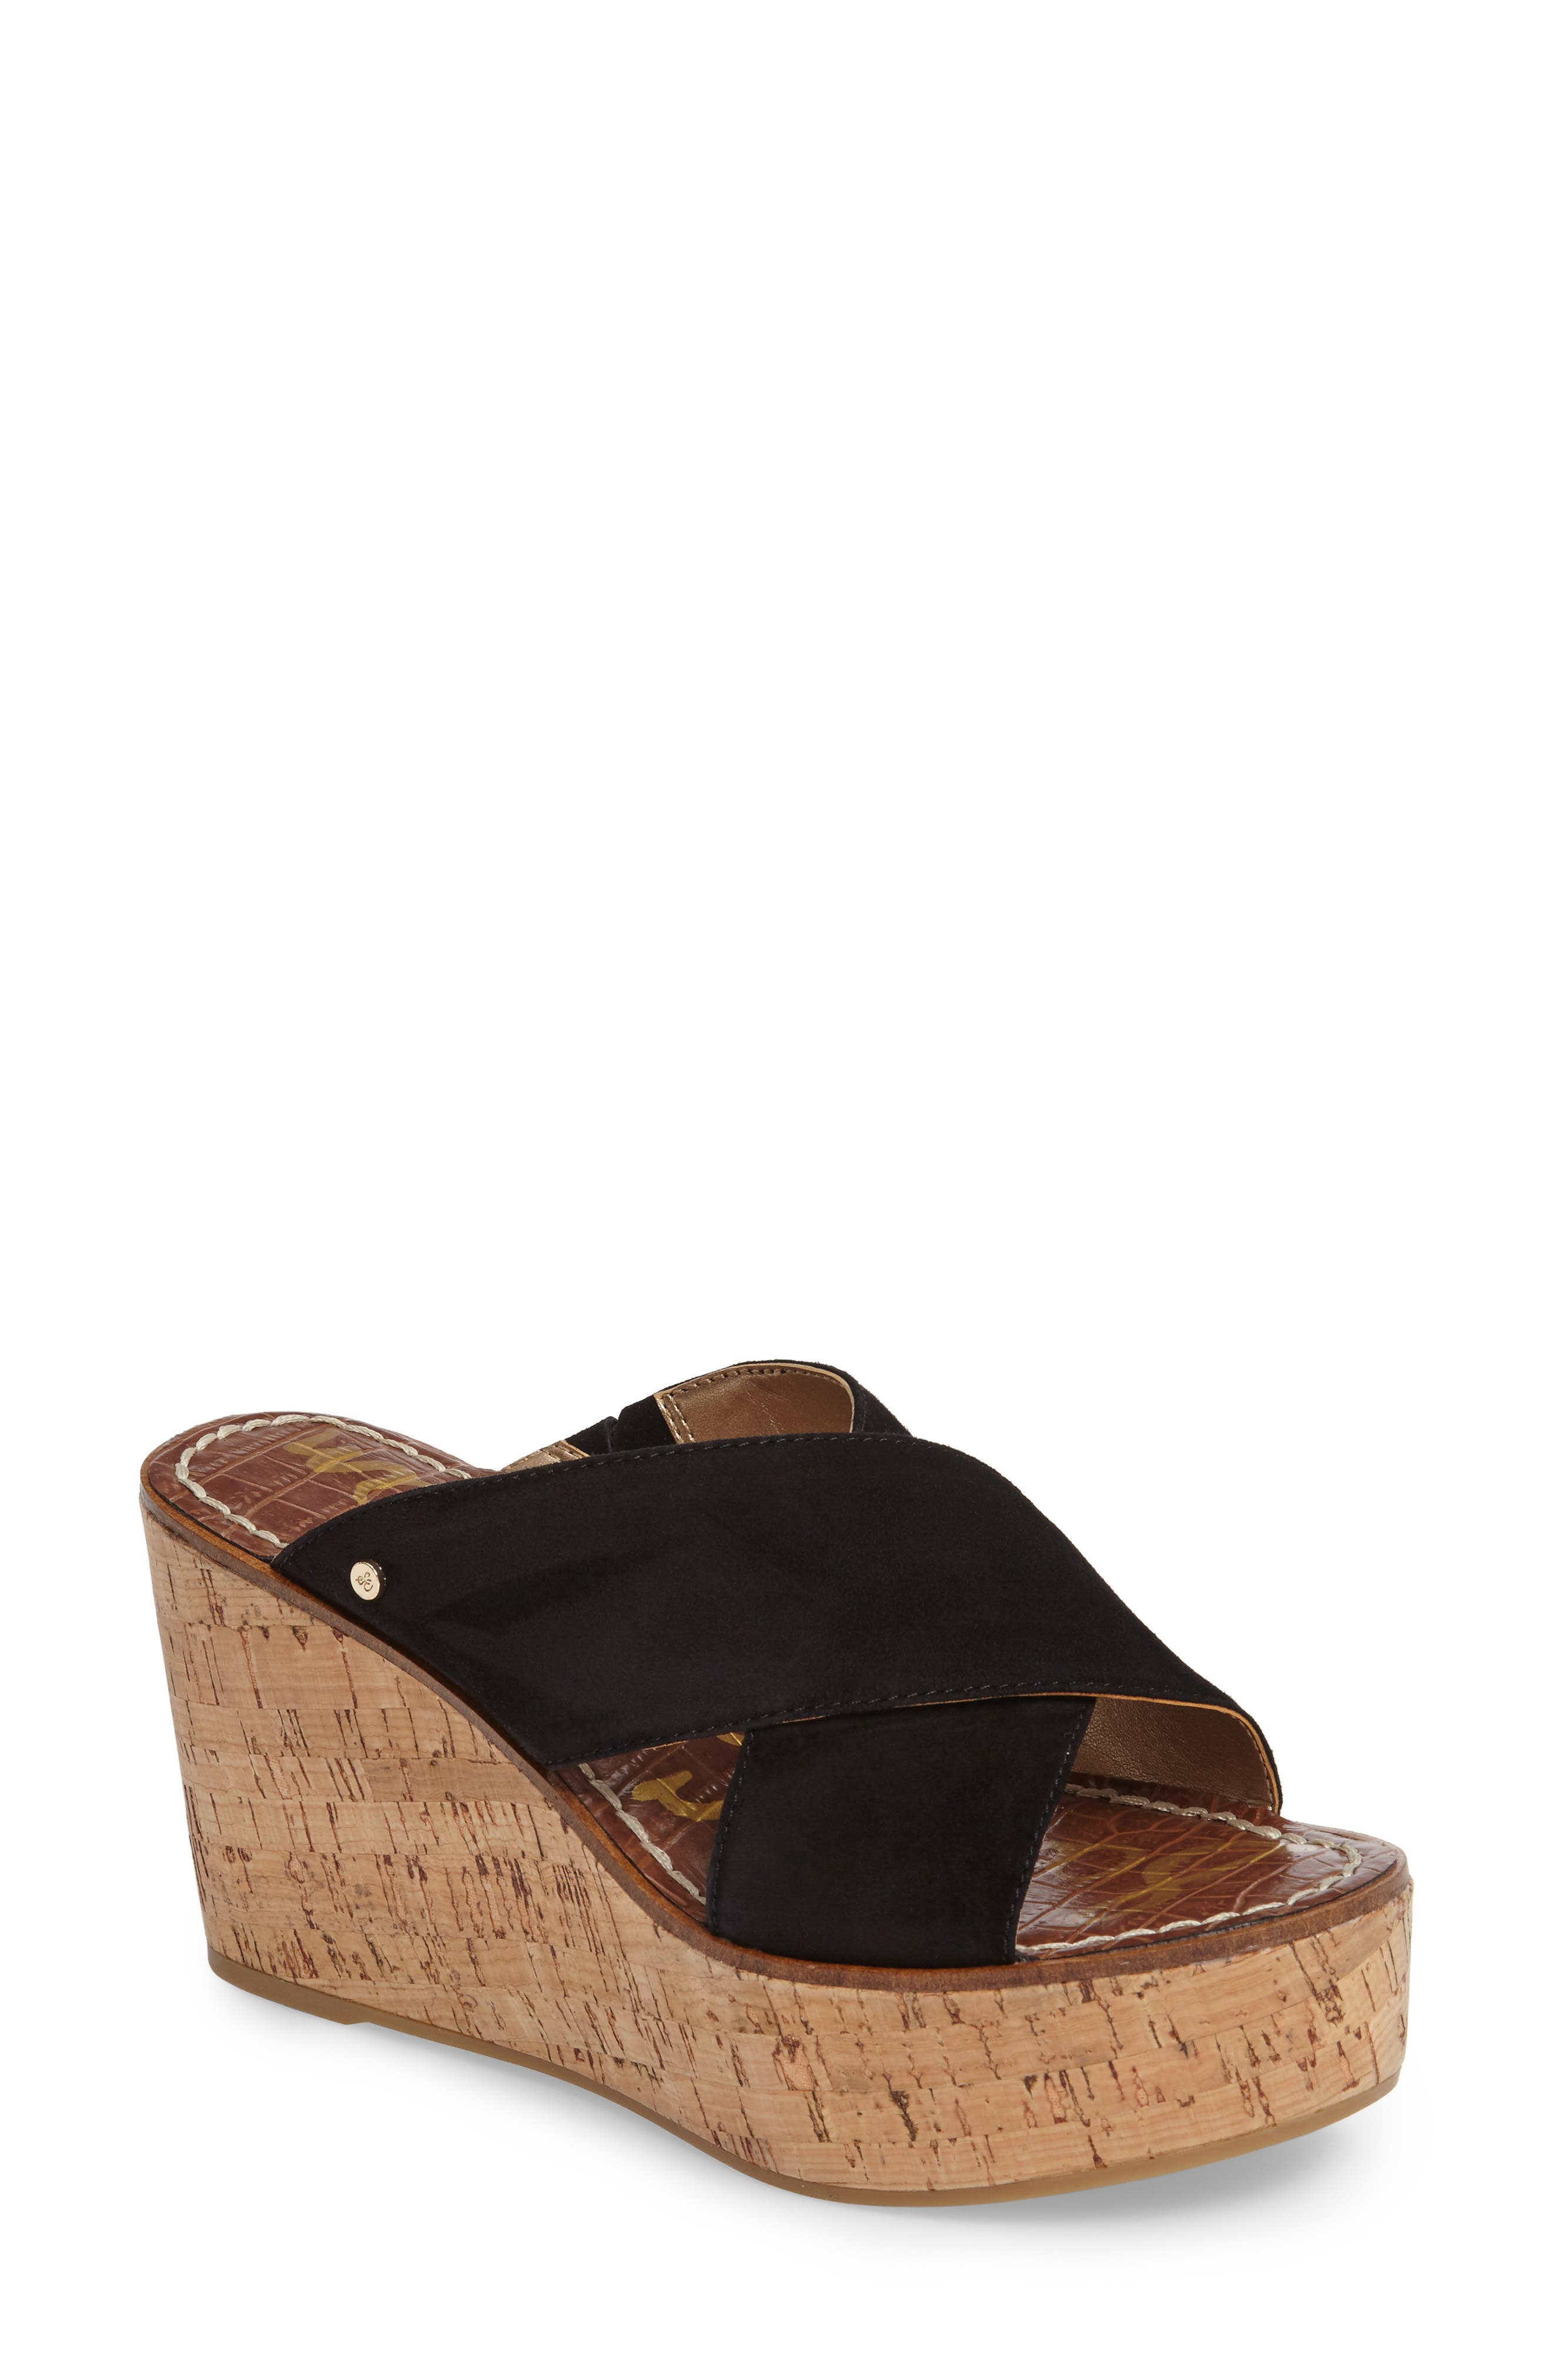 Alternate Image 1 Selected - Sam Edelman Darlene Platform Wedge Sandal (Women)